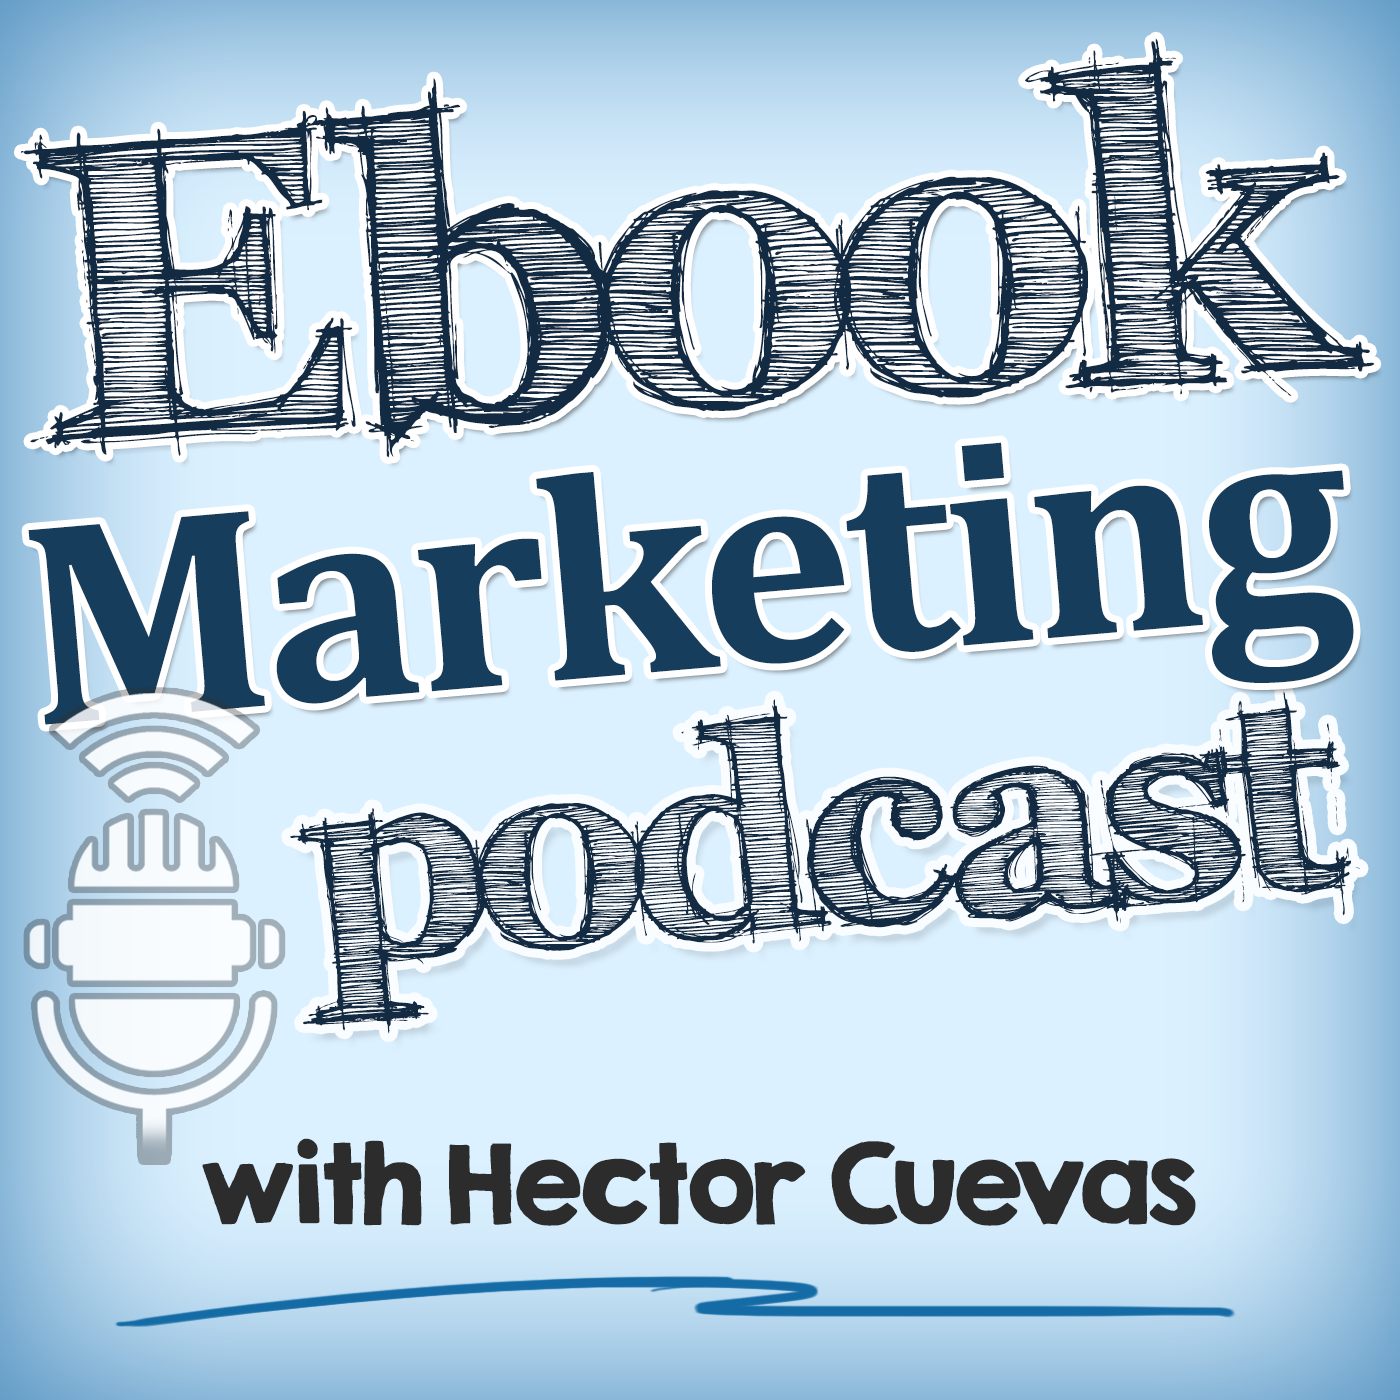 Ebook Marketing Podcast: Book Marketing | Digital Publishing | Blogging | Podcasting